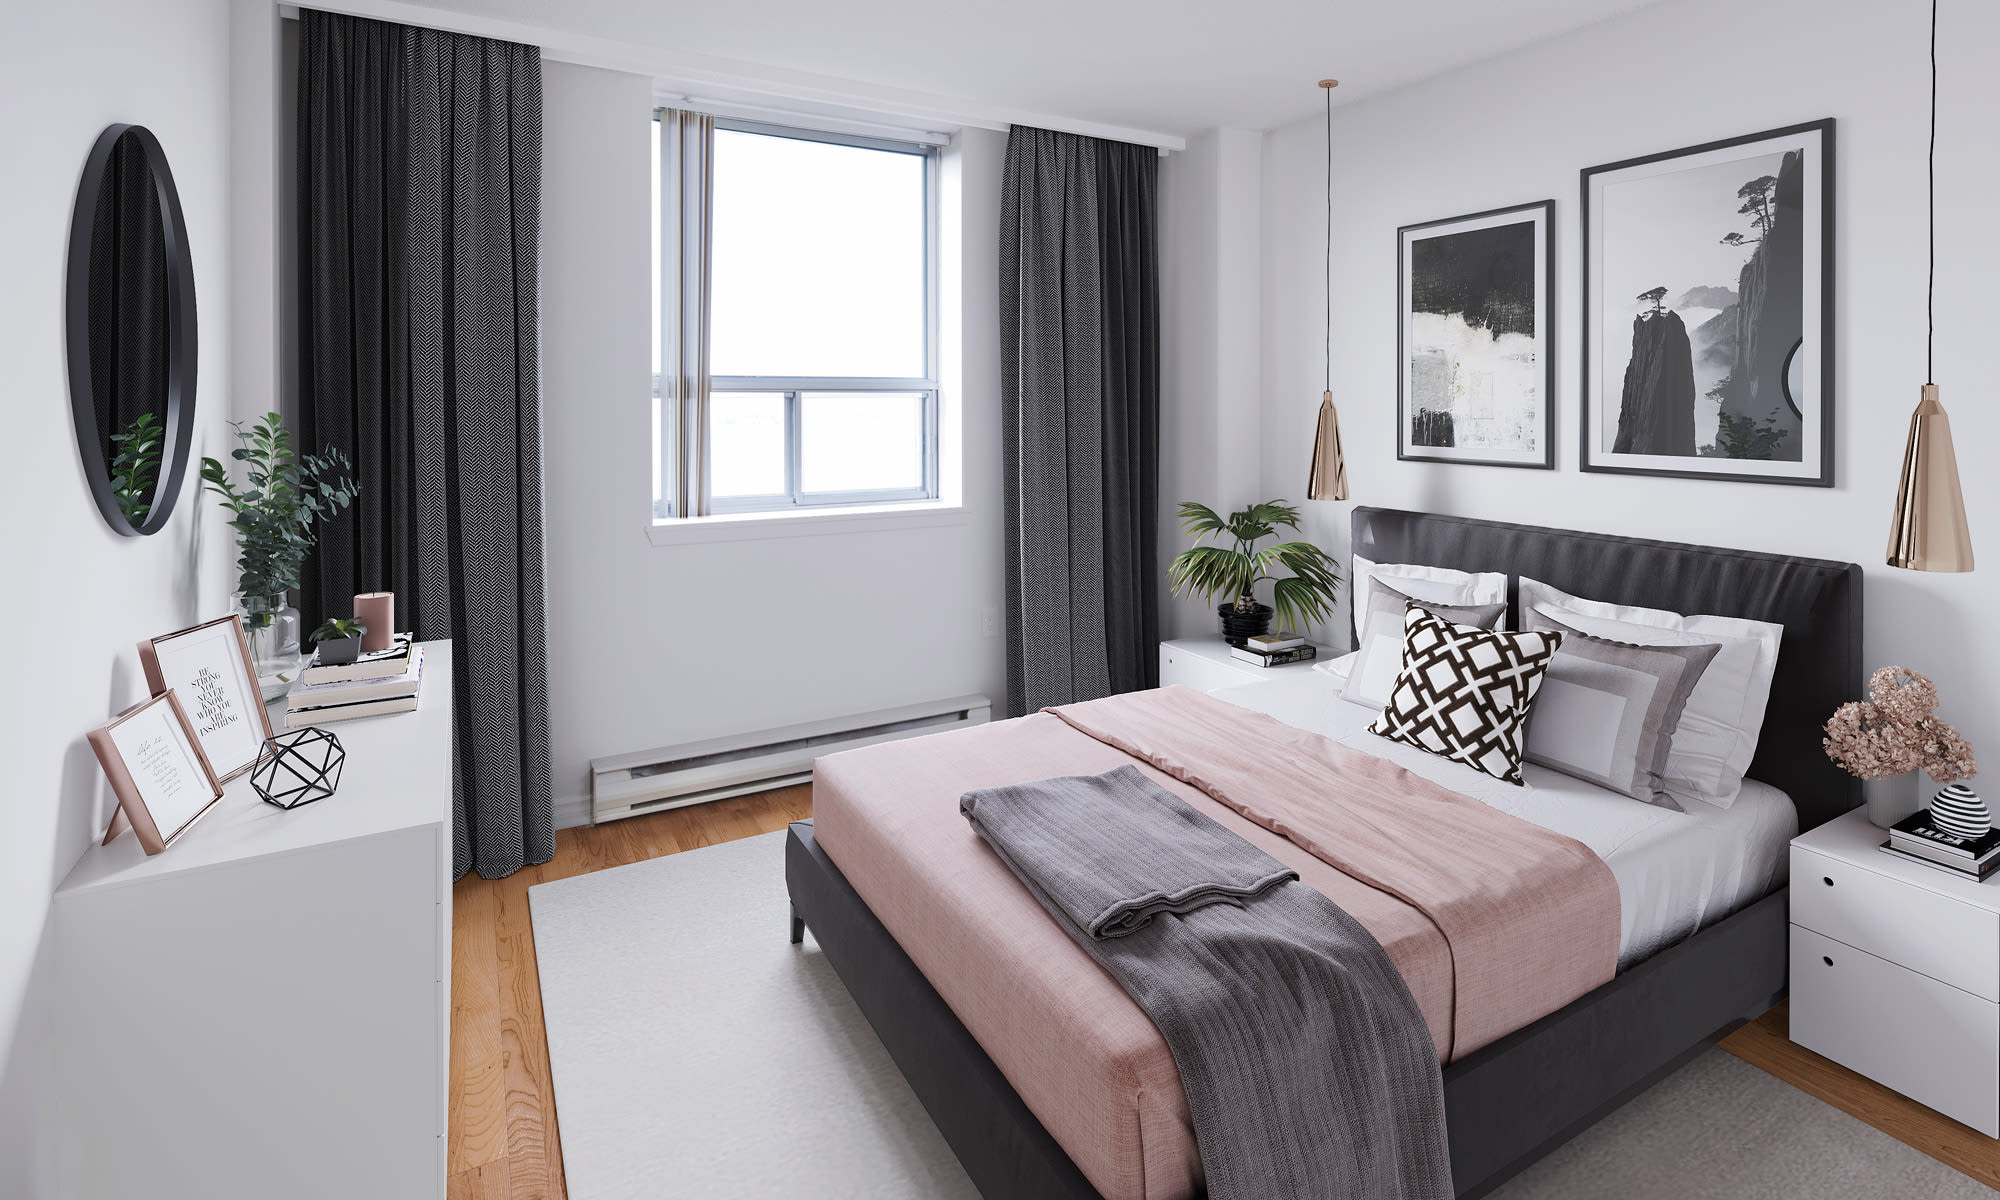 Newly updated bedroom at Cunard Apartments in Halifax, Nova Scotia